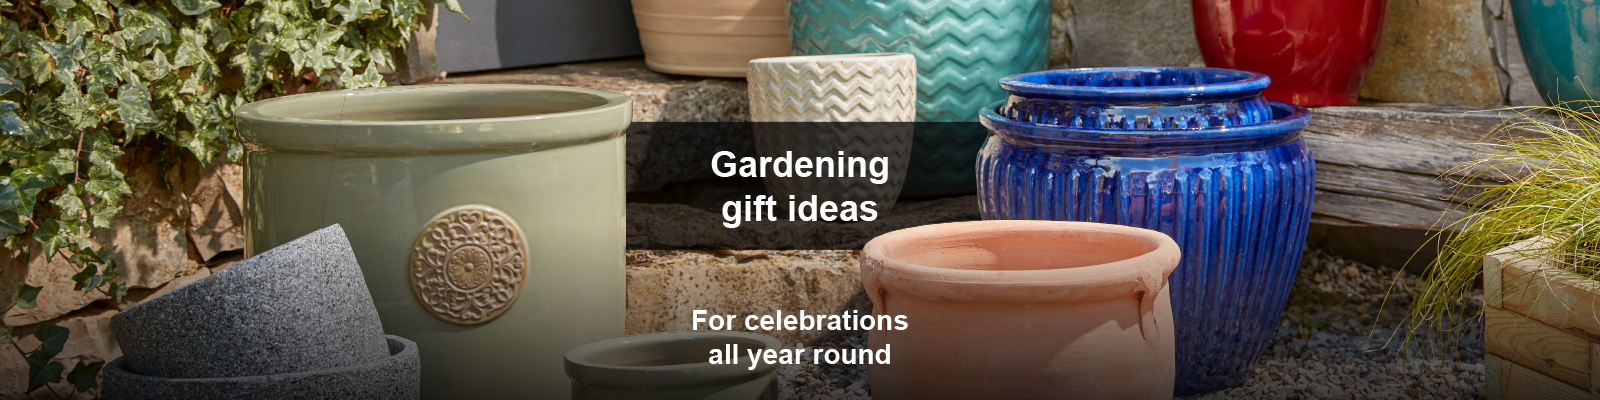 Gardening gift ideas - for celebrations all year round